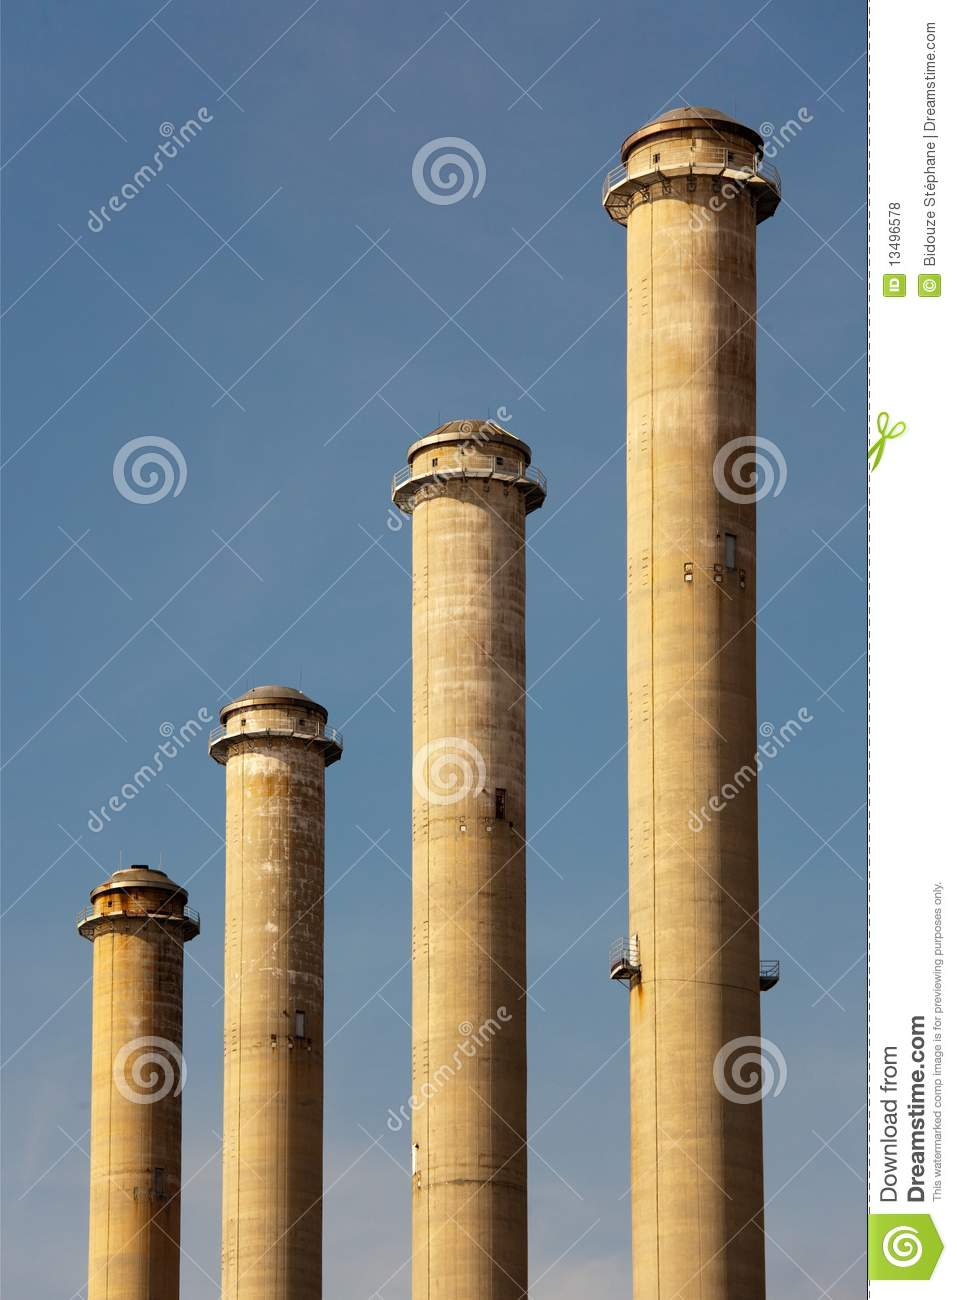 Four Factory Chimneys Royalty Free Stock Photos - Image: 13496578